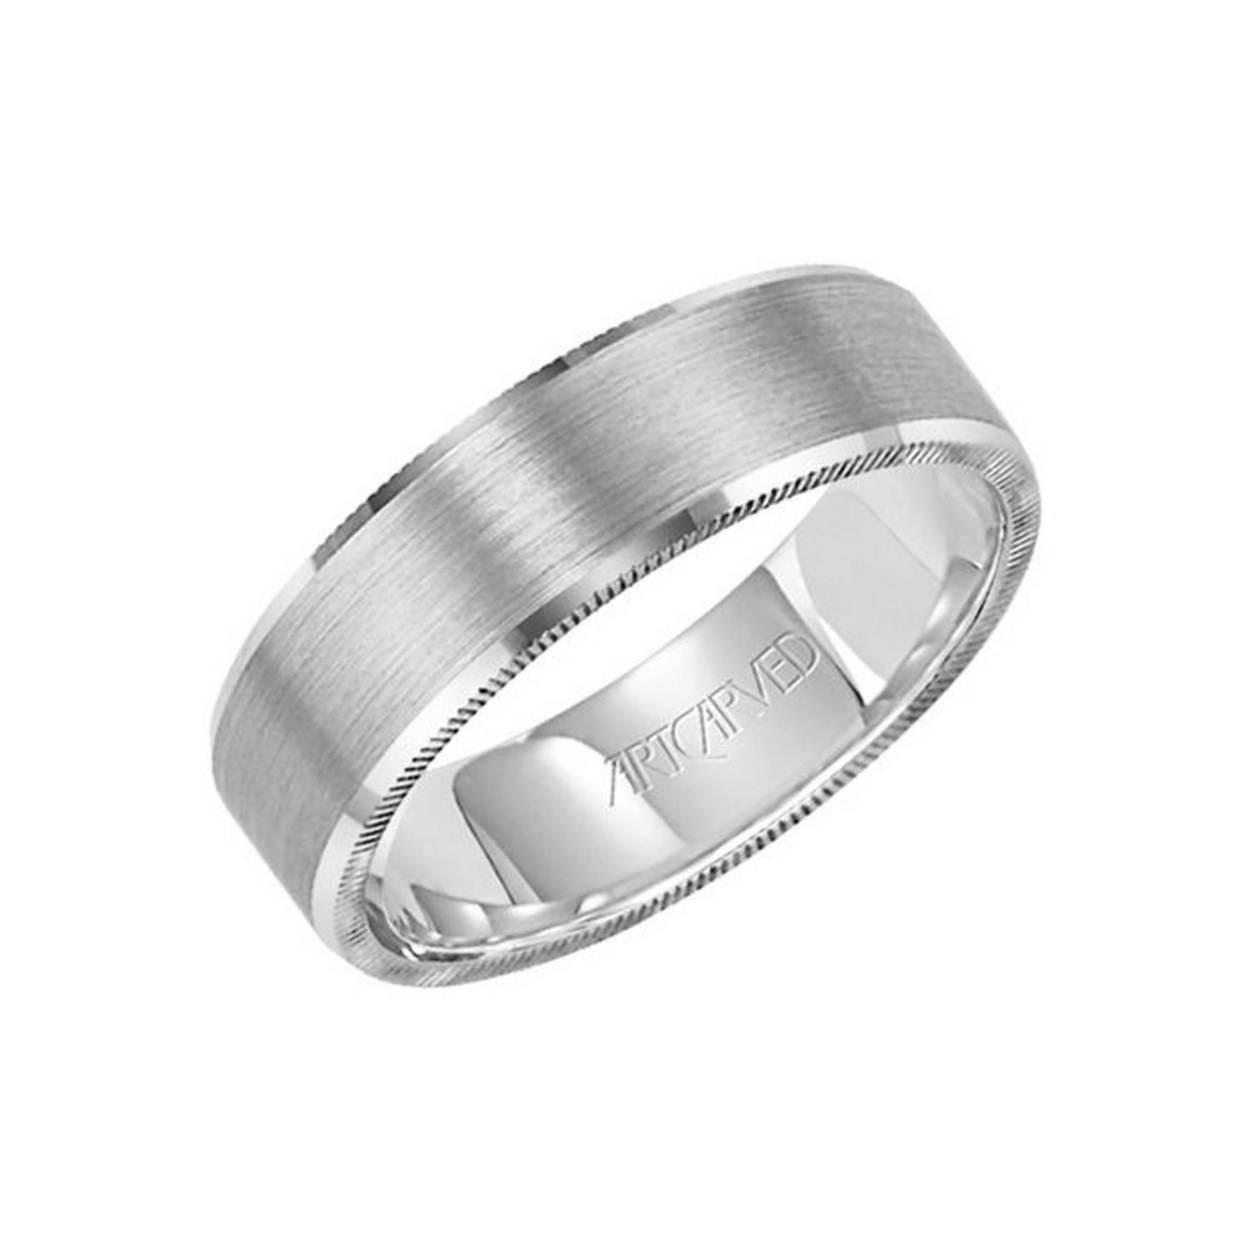 15 Men's Wedding Bands Your Groom Won't Want To Take Off | Glamour With Masculine Wedding Rings (View 3 of 15)